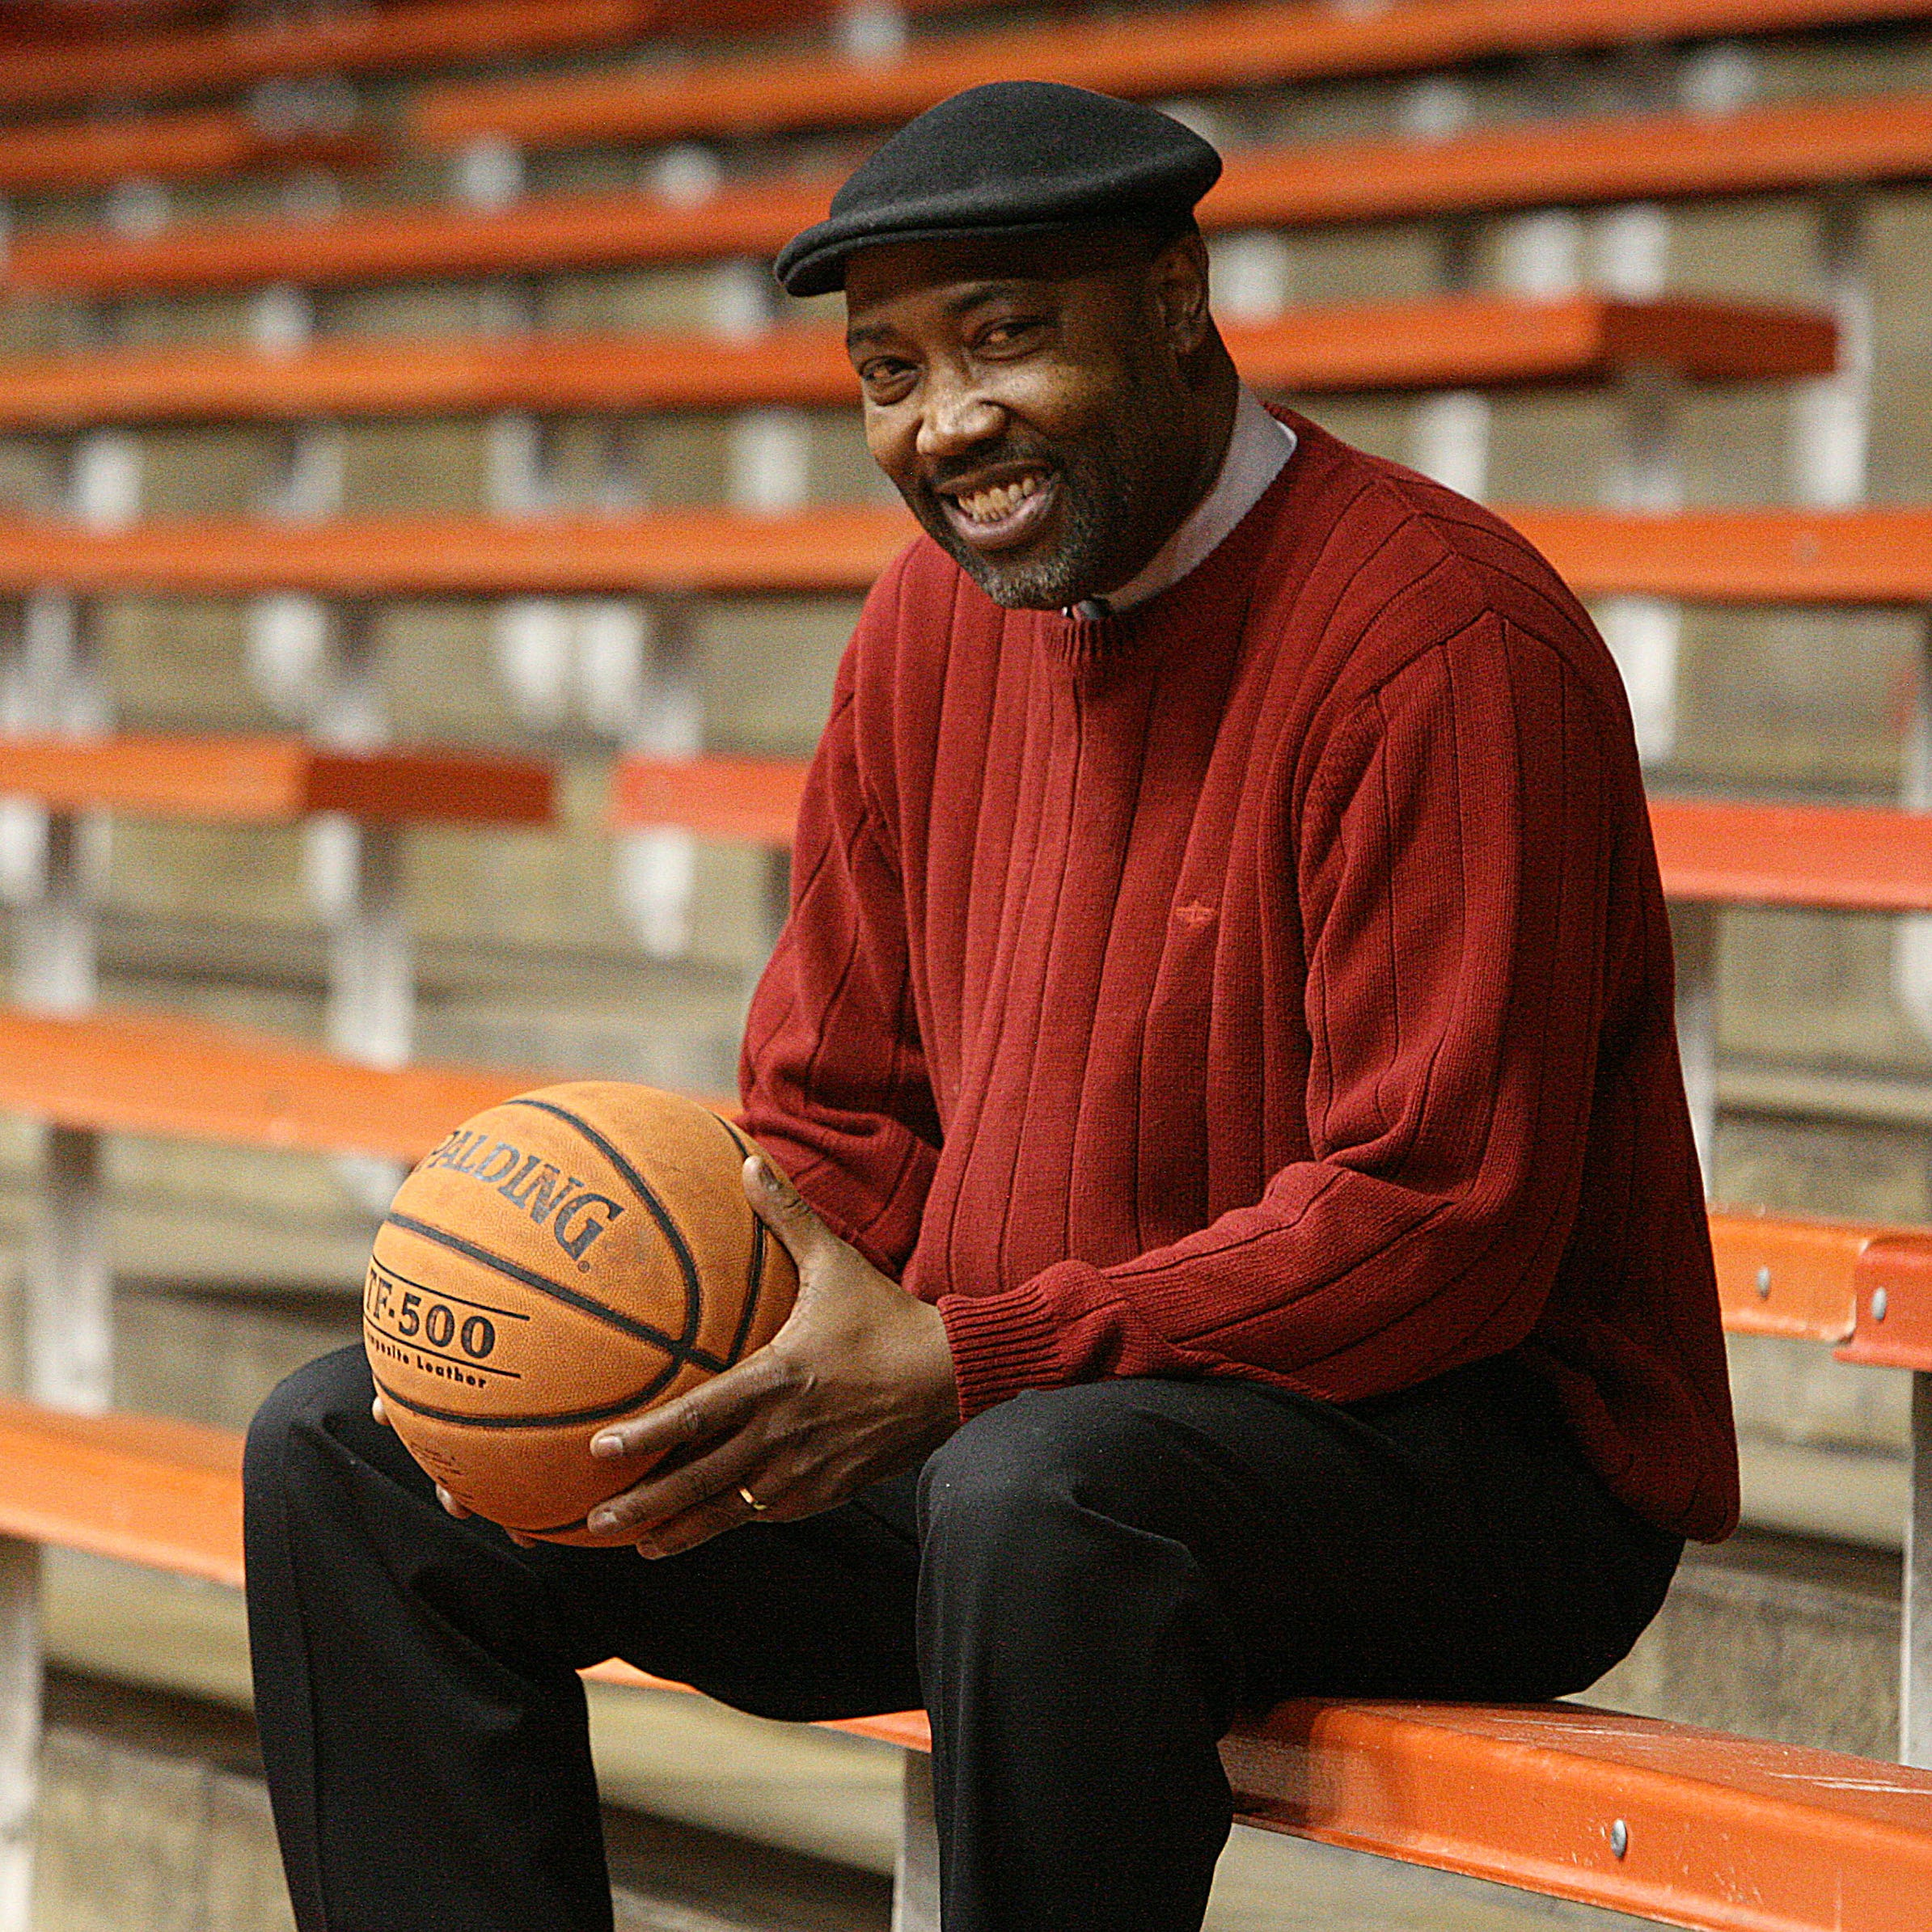 LaMont Weaver on famed WIAA state basketball shot against Neenah: 'It was just excitement'